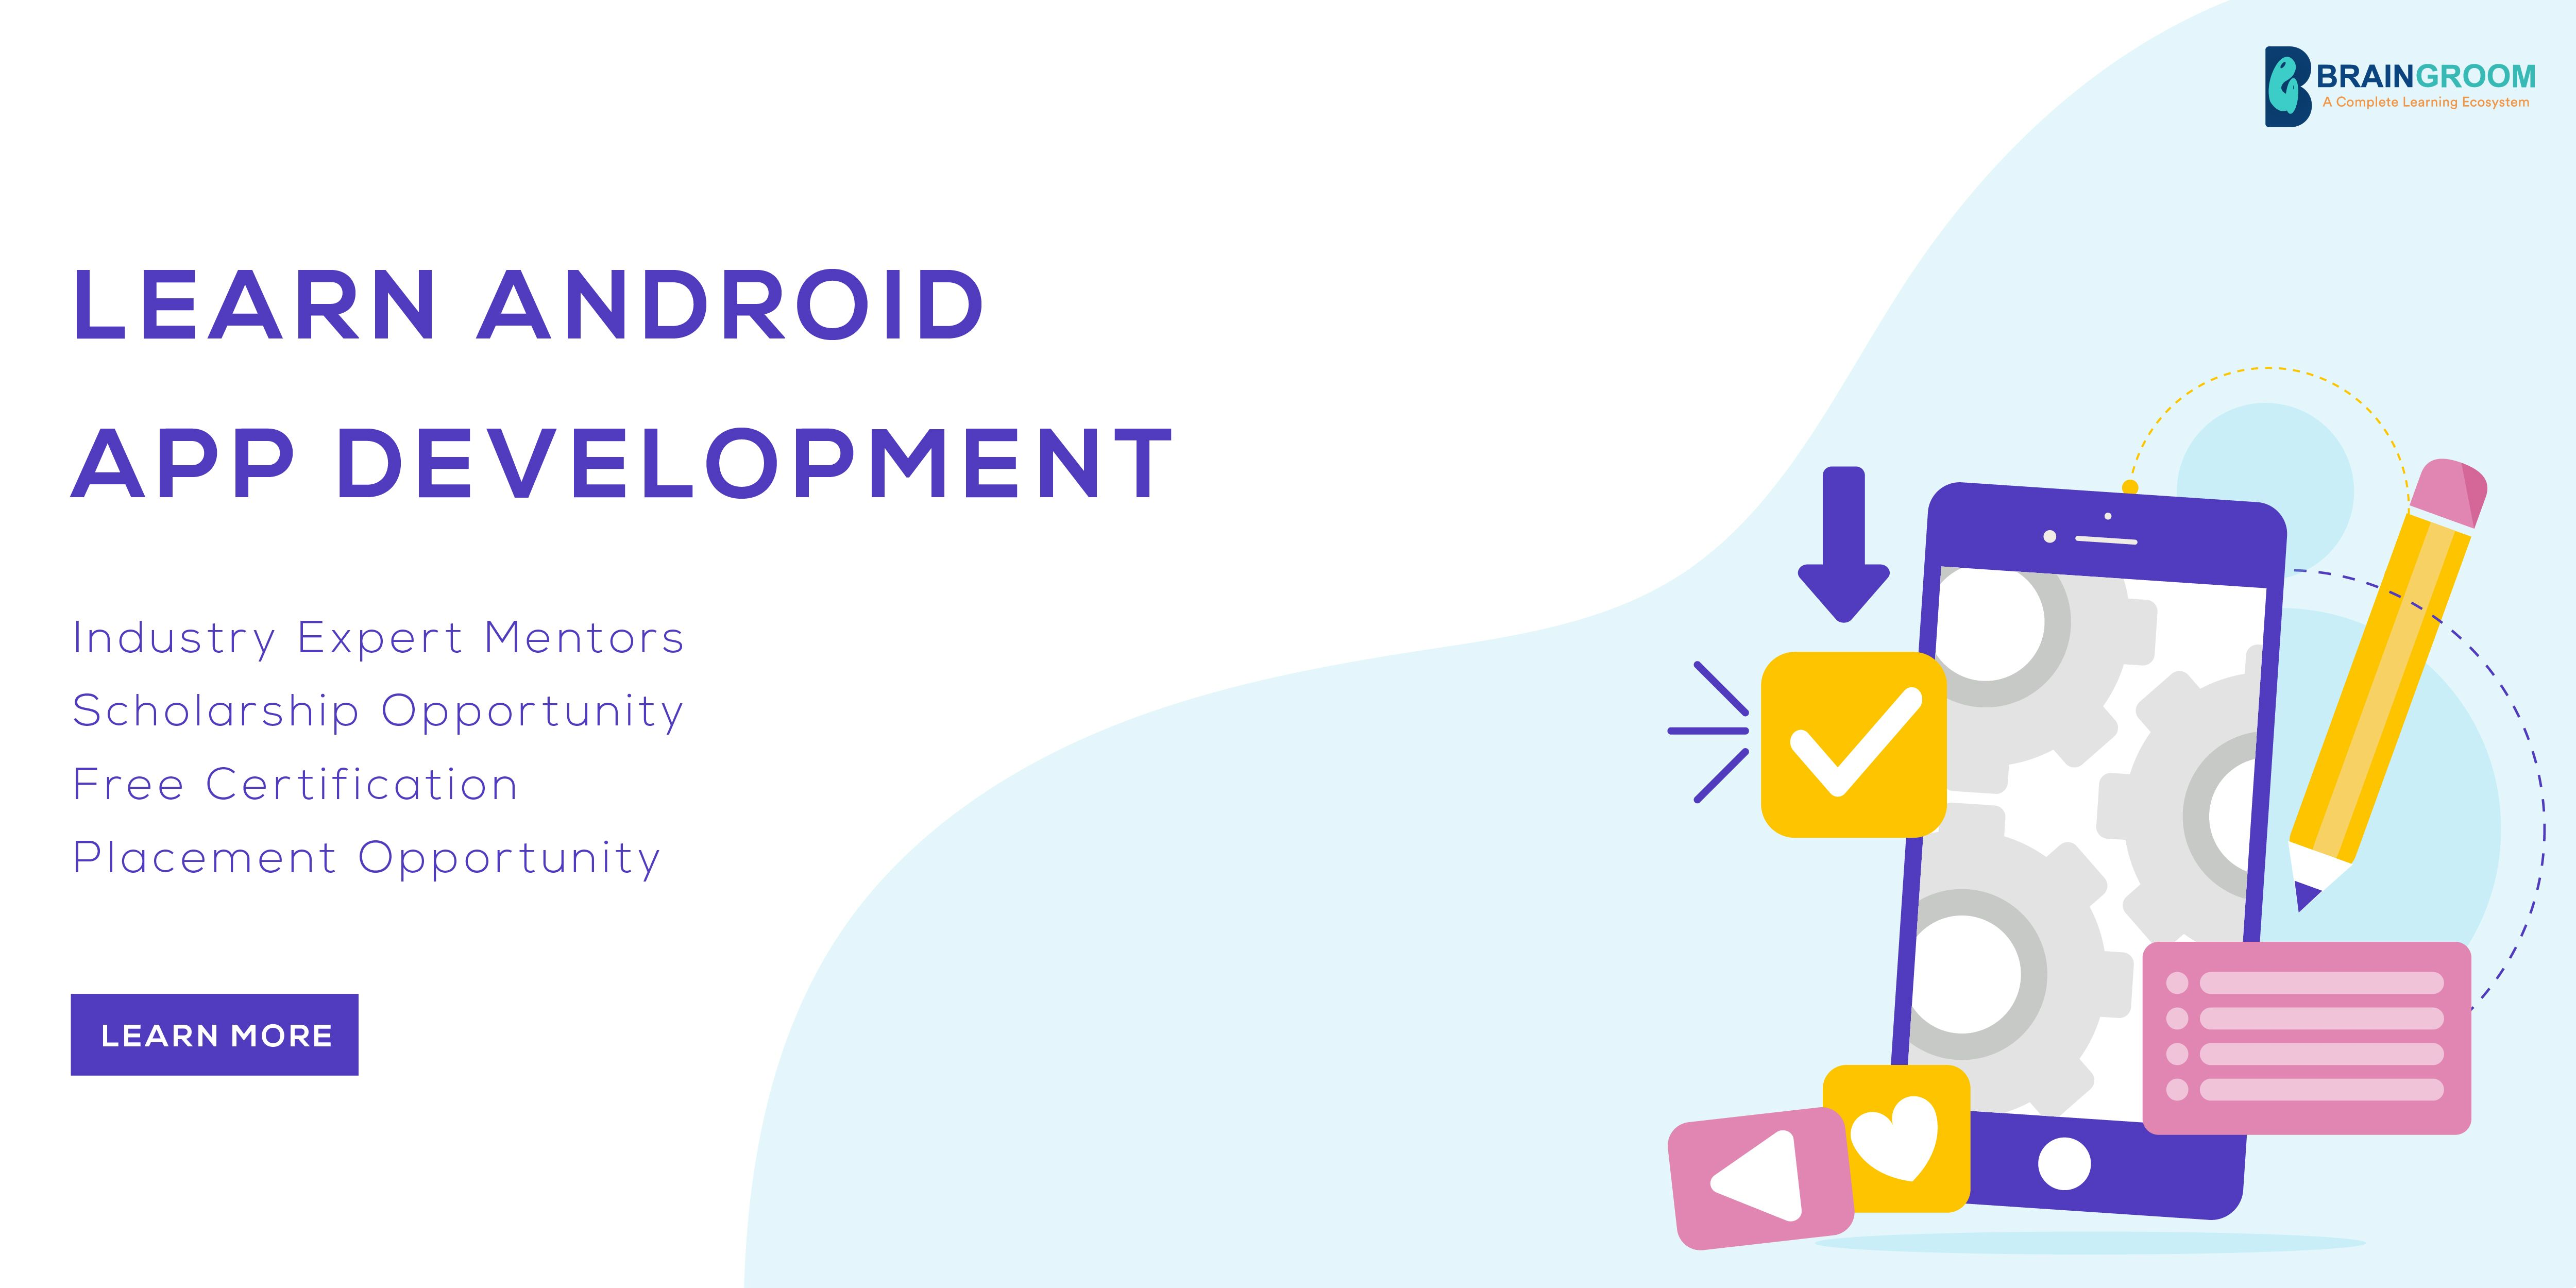 Learn To Build Apps App development course, Android app